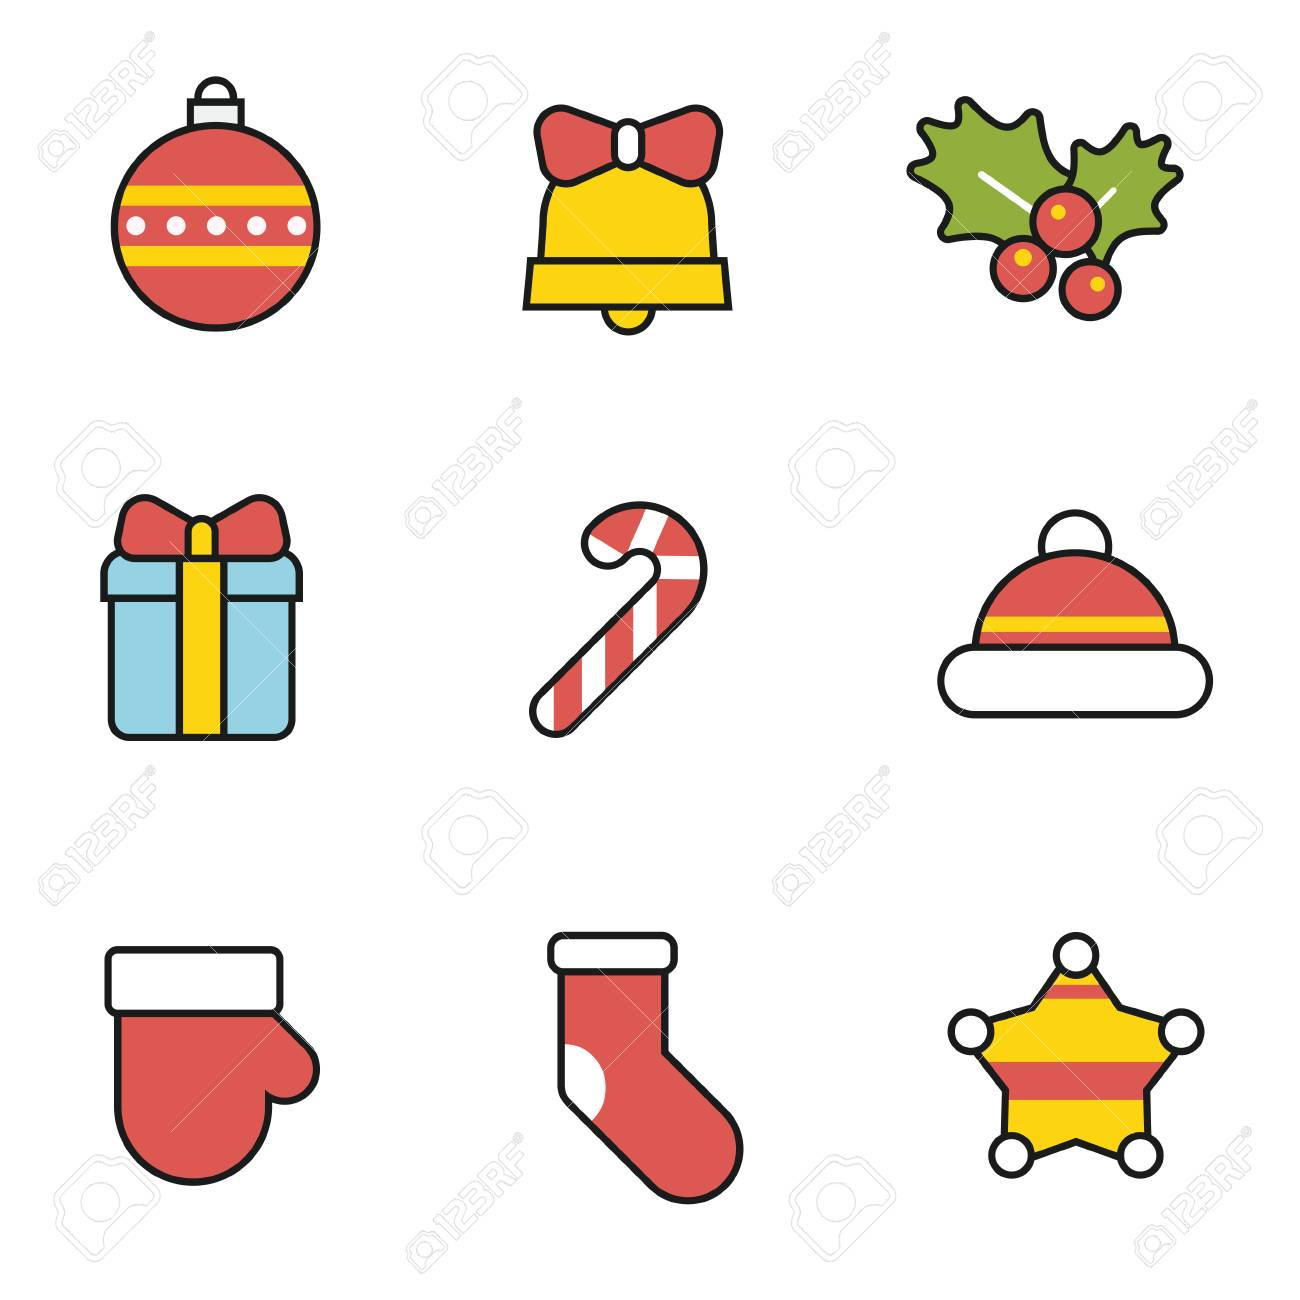 Cute Christmas.Cute Christmas Icon Set With Black Outline